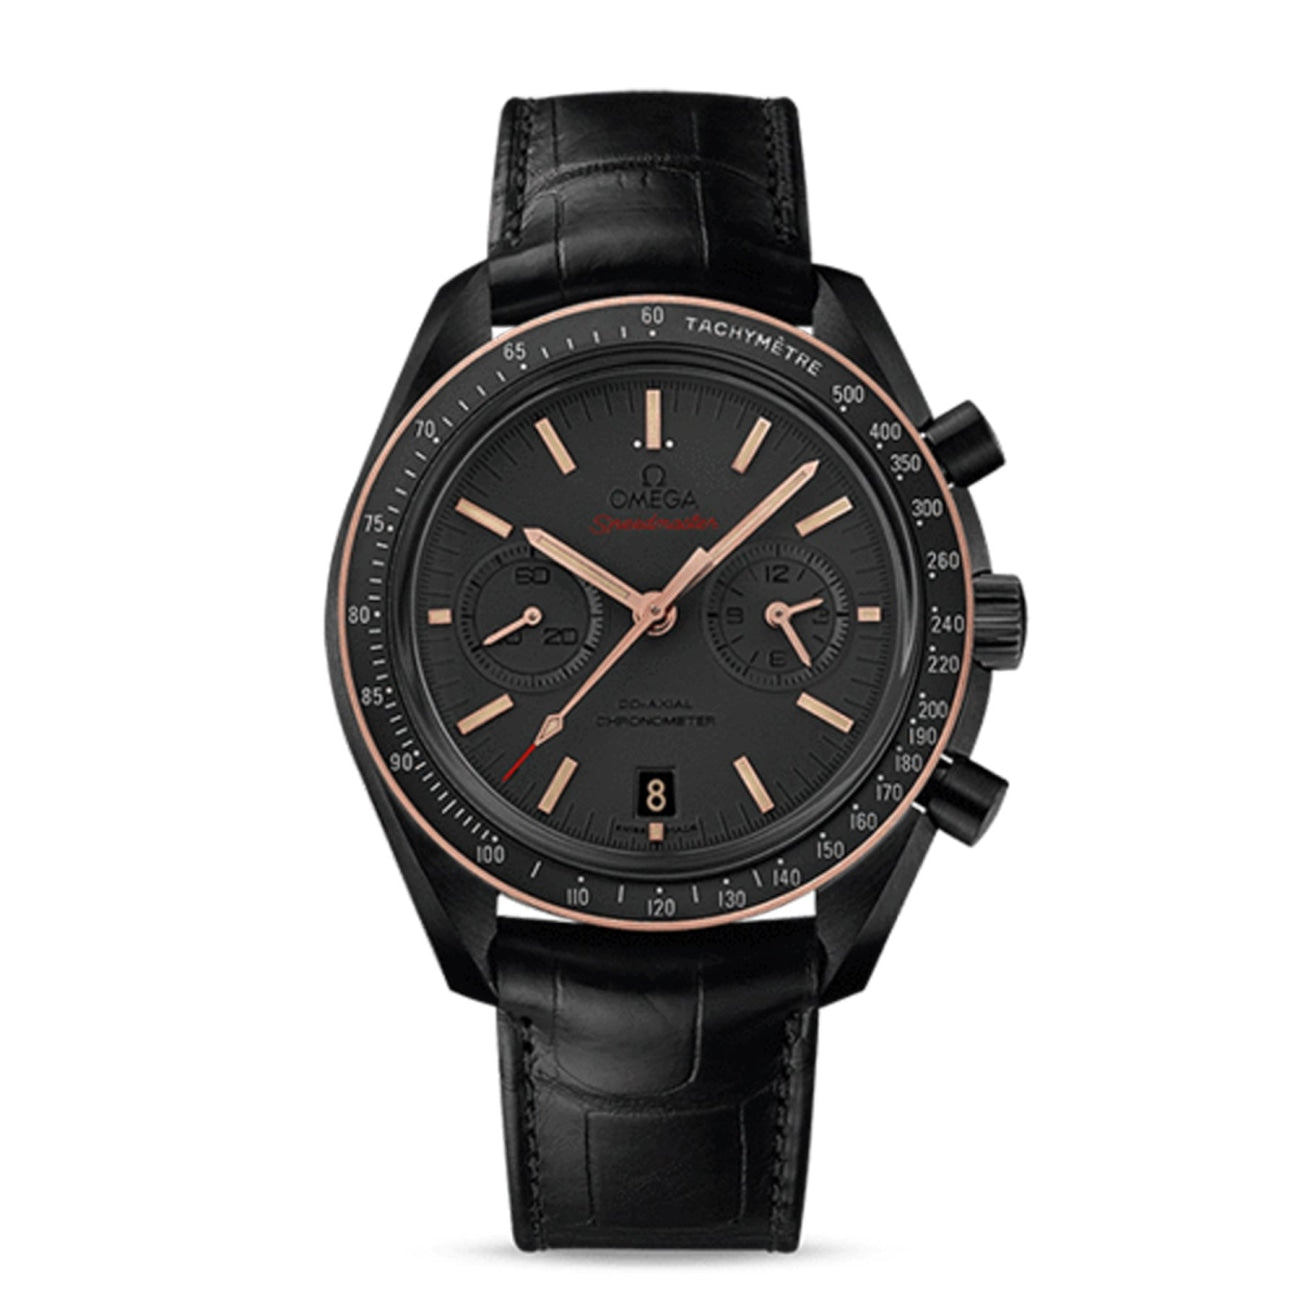 Omega Watches - Speedmaster Moonwatch Omega Co-Axial Chronograph 44.25 Mm | Manfredi Jewels